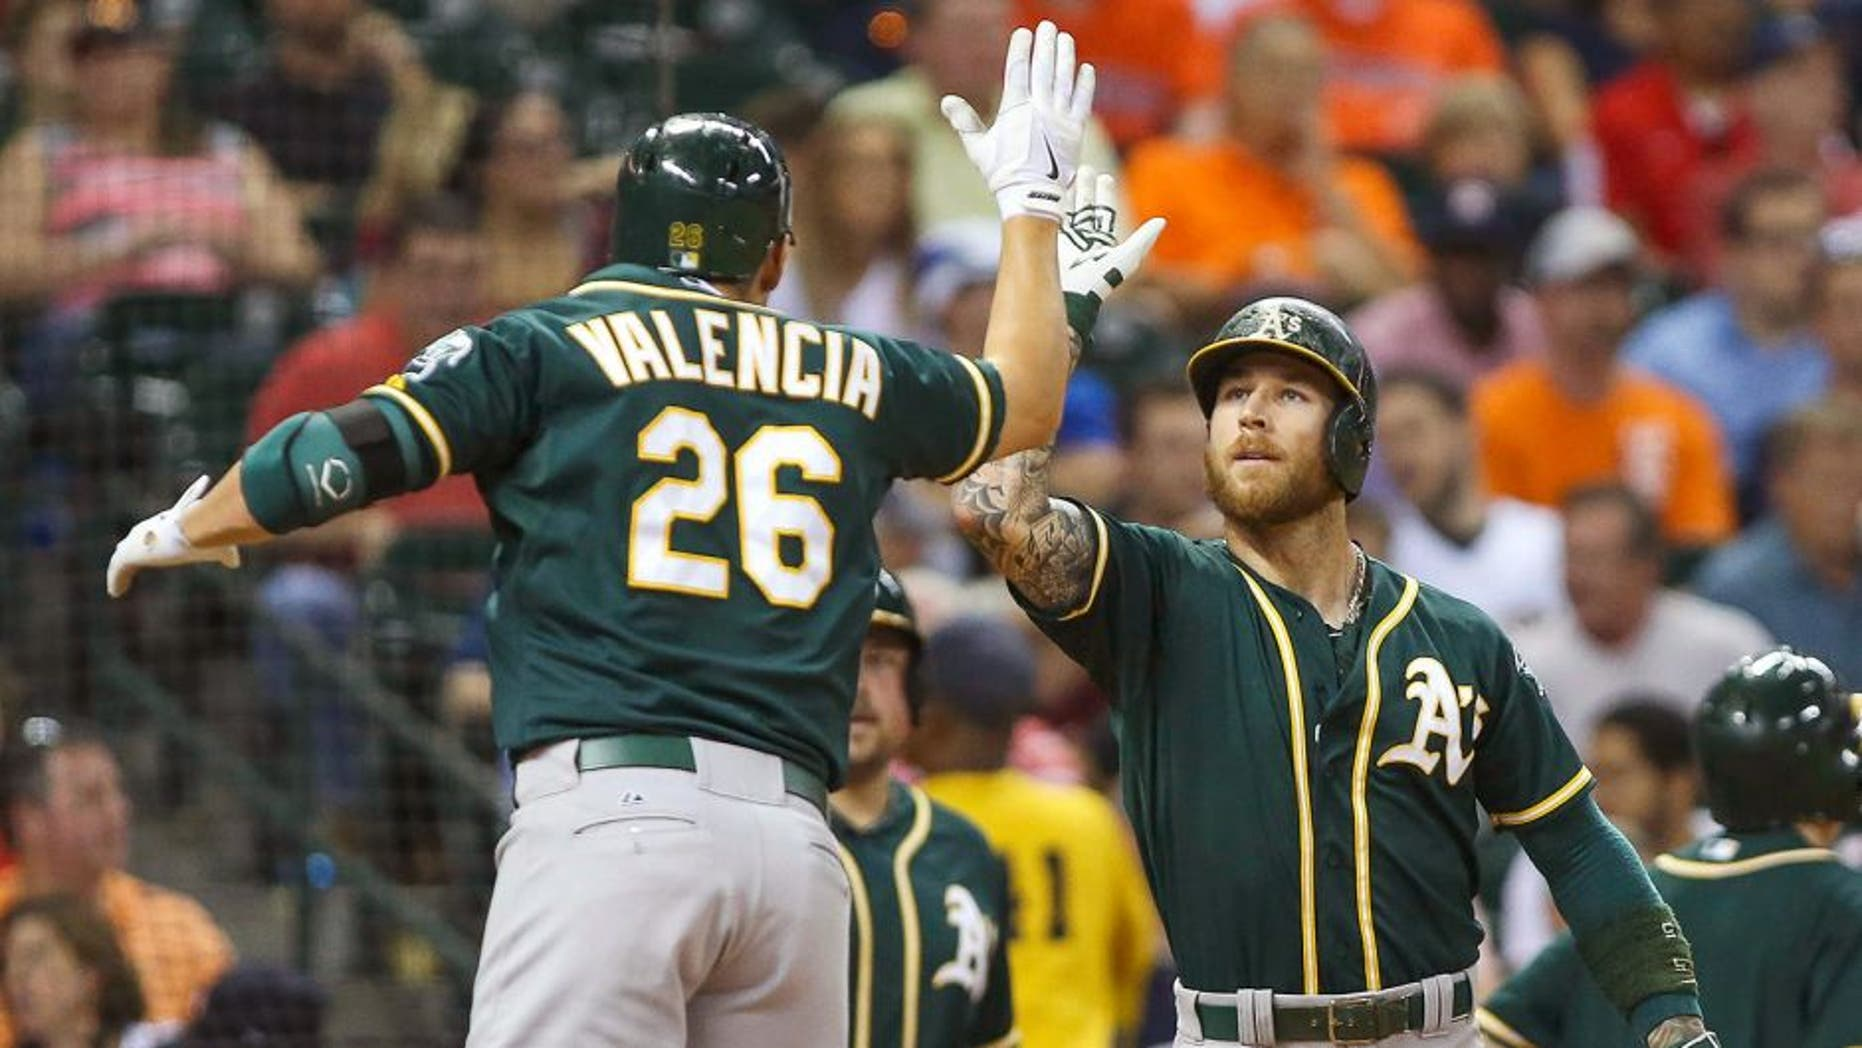 Sep 18, 2015; Houston, TX, USA; Oakland Athletics third baseman Danny Valencia (26) celebrates with second baseman Brett Lawrie (15) after hitting a home run during the fourth inning against the Houston Astros at Minute Maid Park. Mandatory Credit: Troy Taormina-USA TODAY Sports